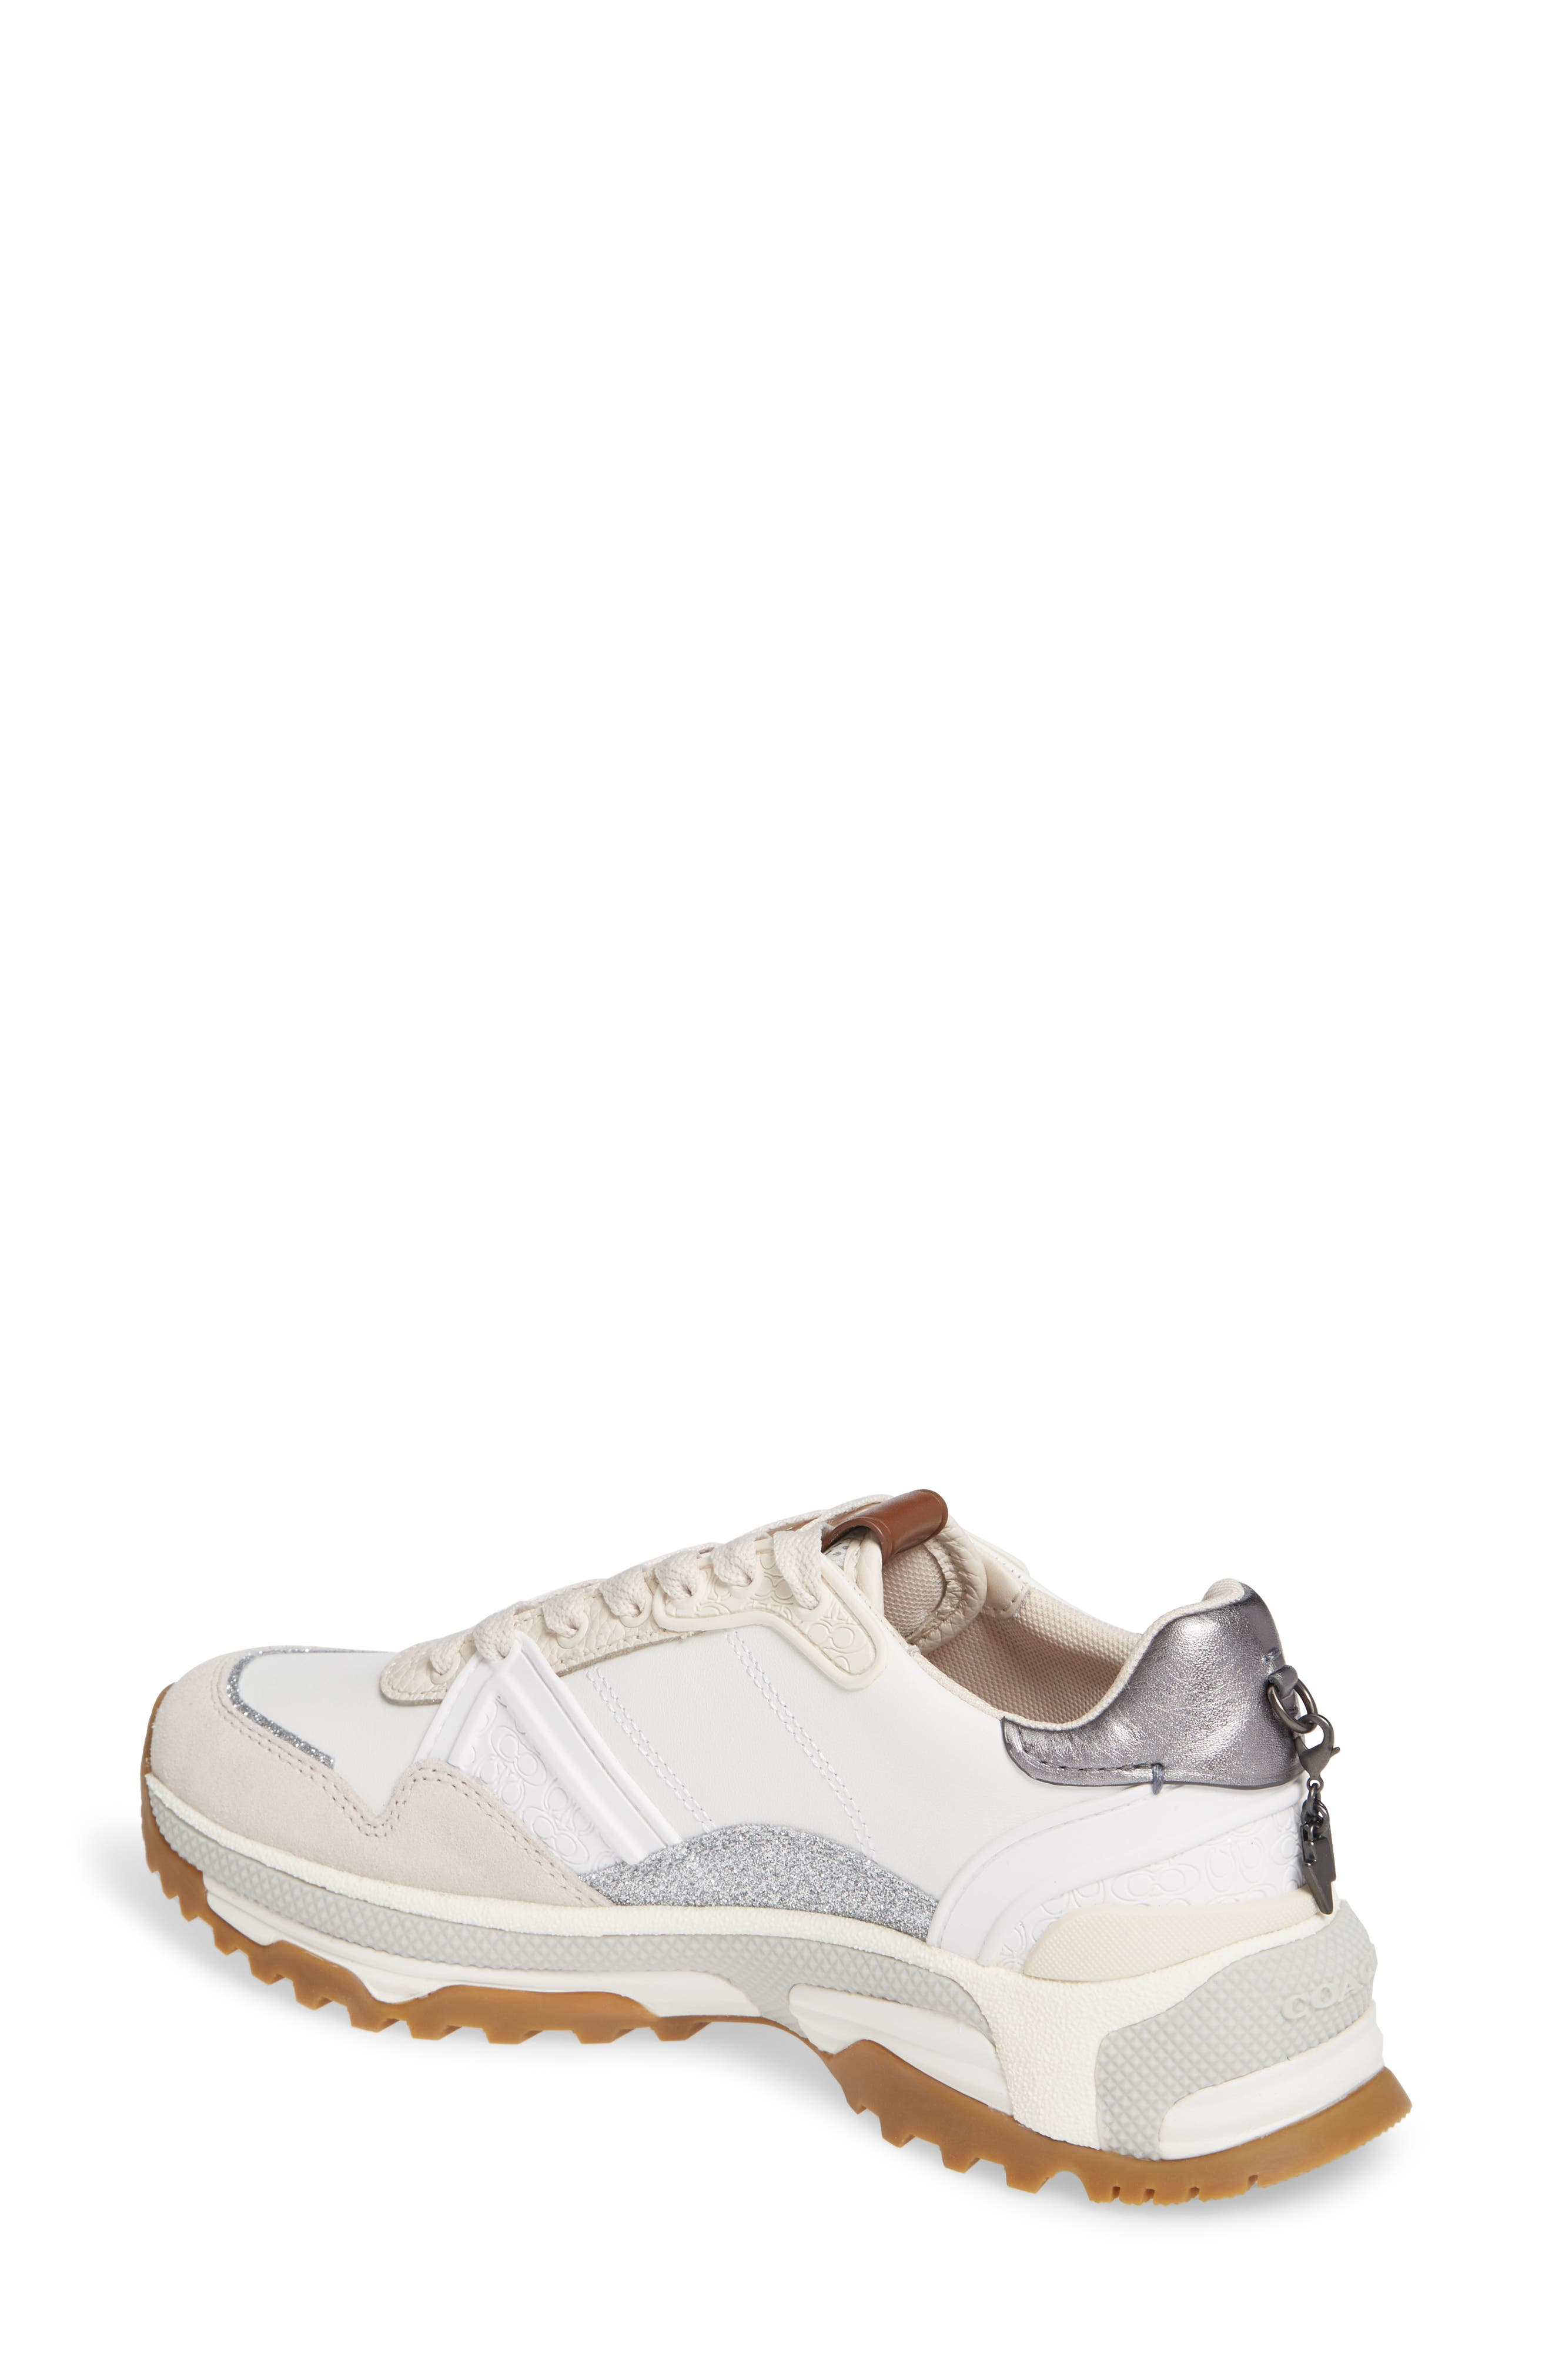 GLT Sneaker,                             Alternate thumbnail 2, color,                             WHITE LEATHER/ SUEDE